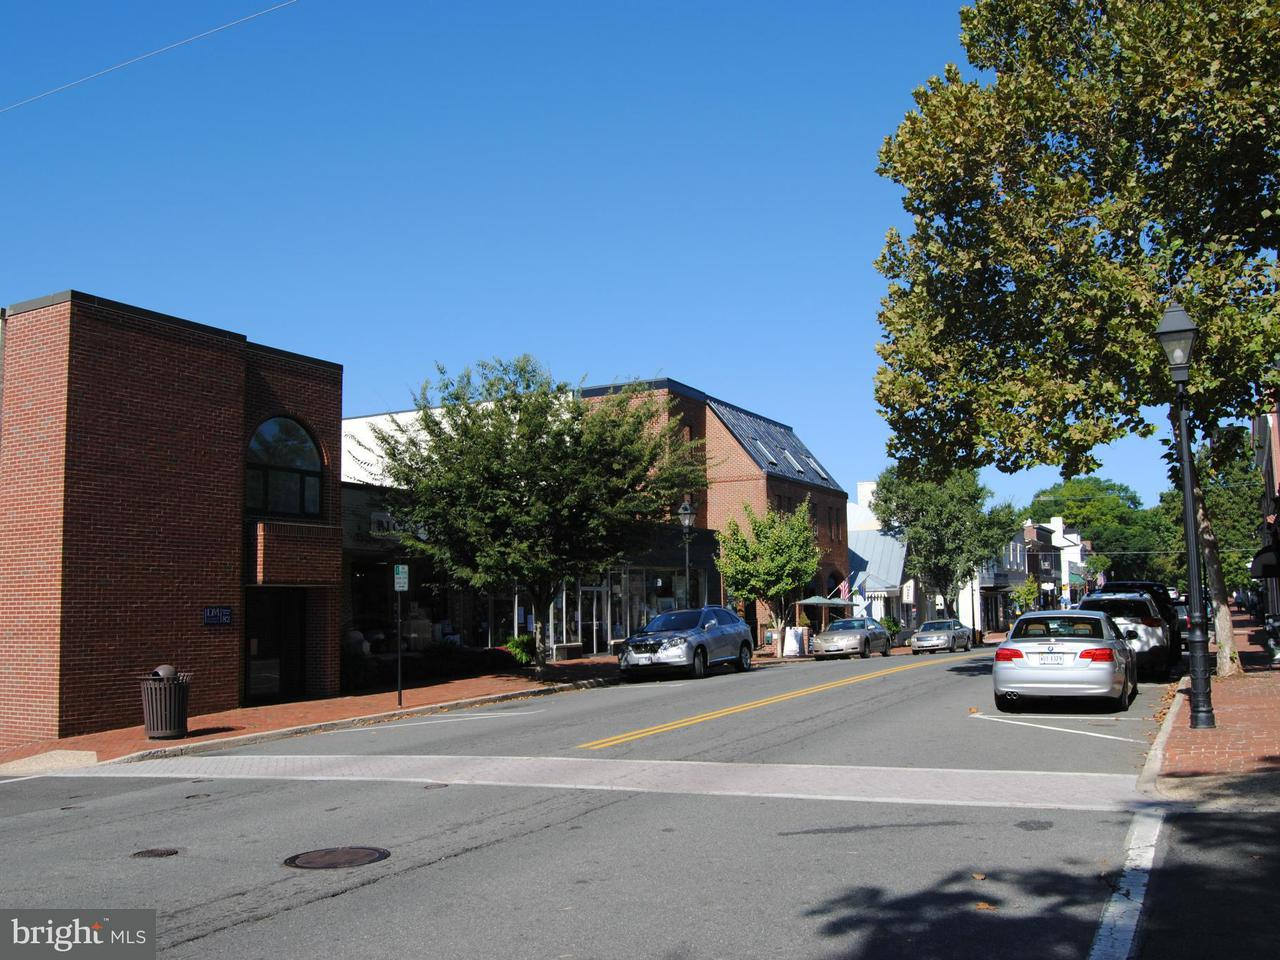 Additional photo for property listing at 82 Main Street 82 Main Street Warrenton, Virginia 20186 États-Unis